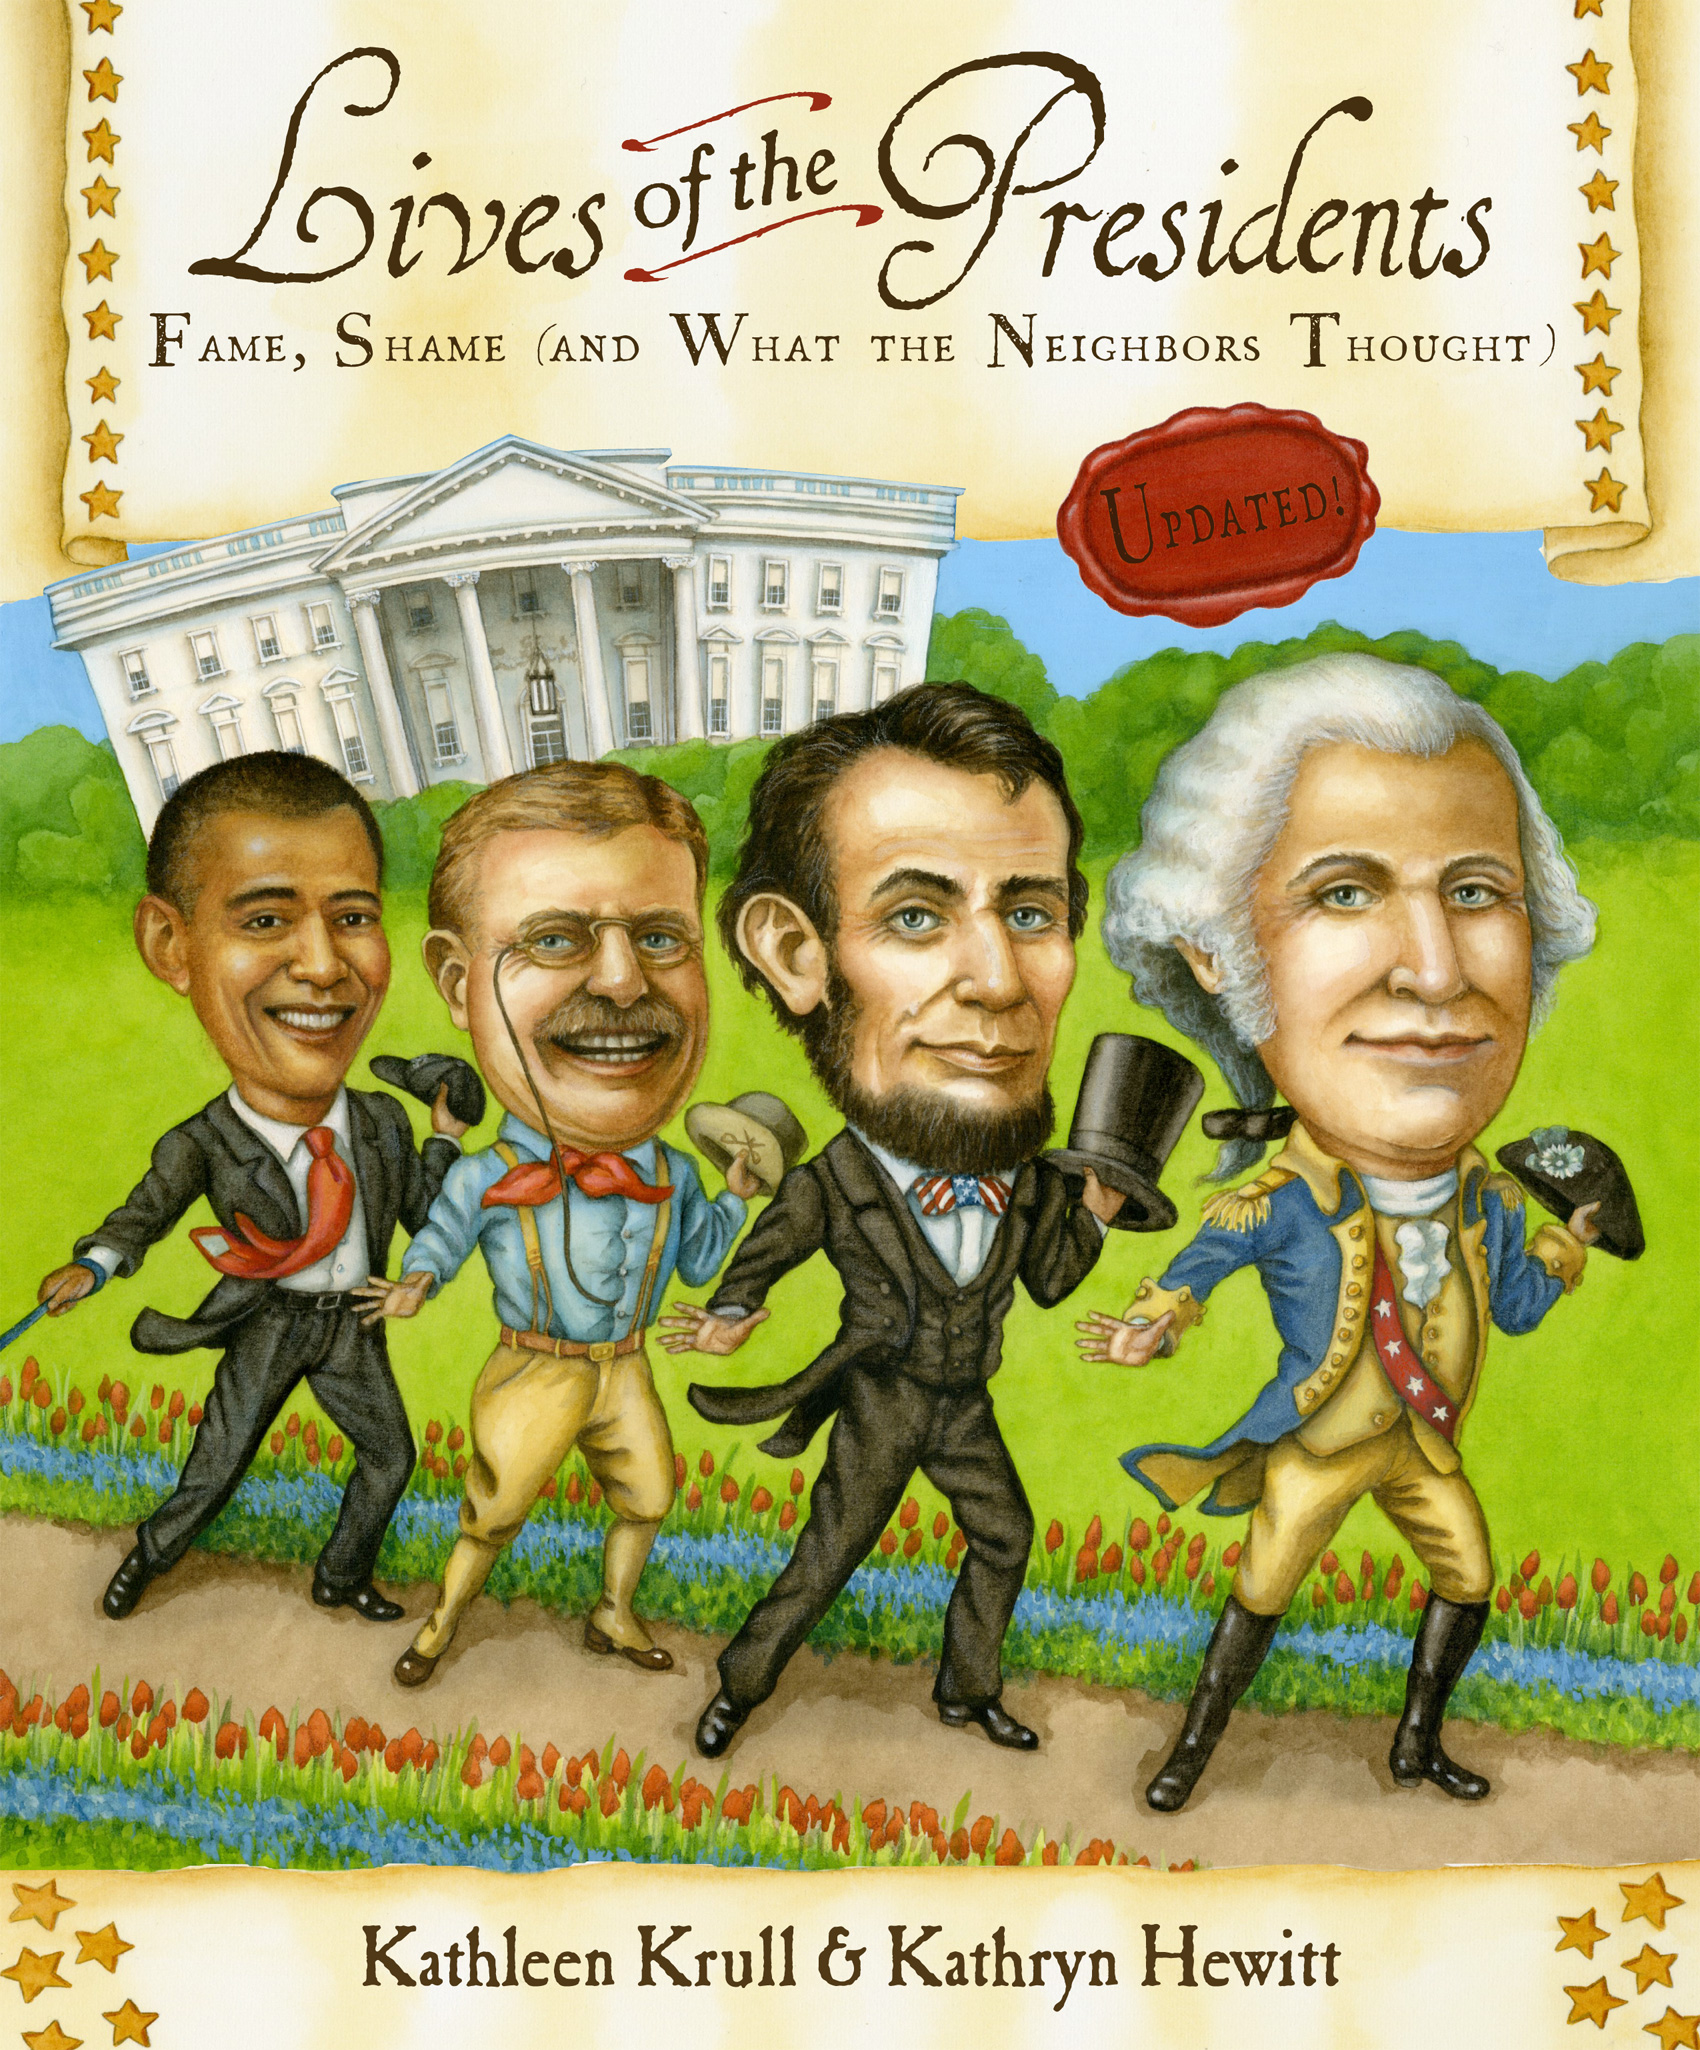 Lives of the Presidents: Fame, Shame (and What the Neighbors Thought) - Kathleen Krull, illustrated by Kathryn Hewitt   Houghton Mifflin Harcourt 2011Every U.S. president is the focus of public scrutiny, but how well do we know these men? What kind of fathers do presidents make? Husbands? Neighbors? Other books focus on the historical achievements of those who have occupied our country's highest office;Lives of the Presidents looks instead at their bad habits, silly nicknames, and strange pets. Every president—from George Washington to Barack Obama—is included, with an emphasis on those who have had the greatest impact on history. Discover their high points, low points, and the times in between. In this stunning addition to their acclaimed series, Kathleen Krull and Kathryn Hewitt take us beyond politics and photo opportunities, revealing the entertaining, complex, and very real lives of the presidents.